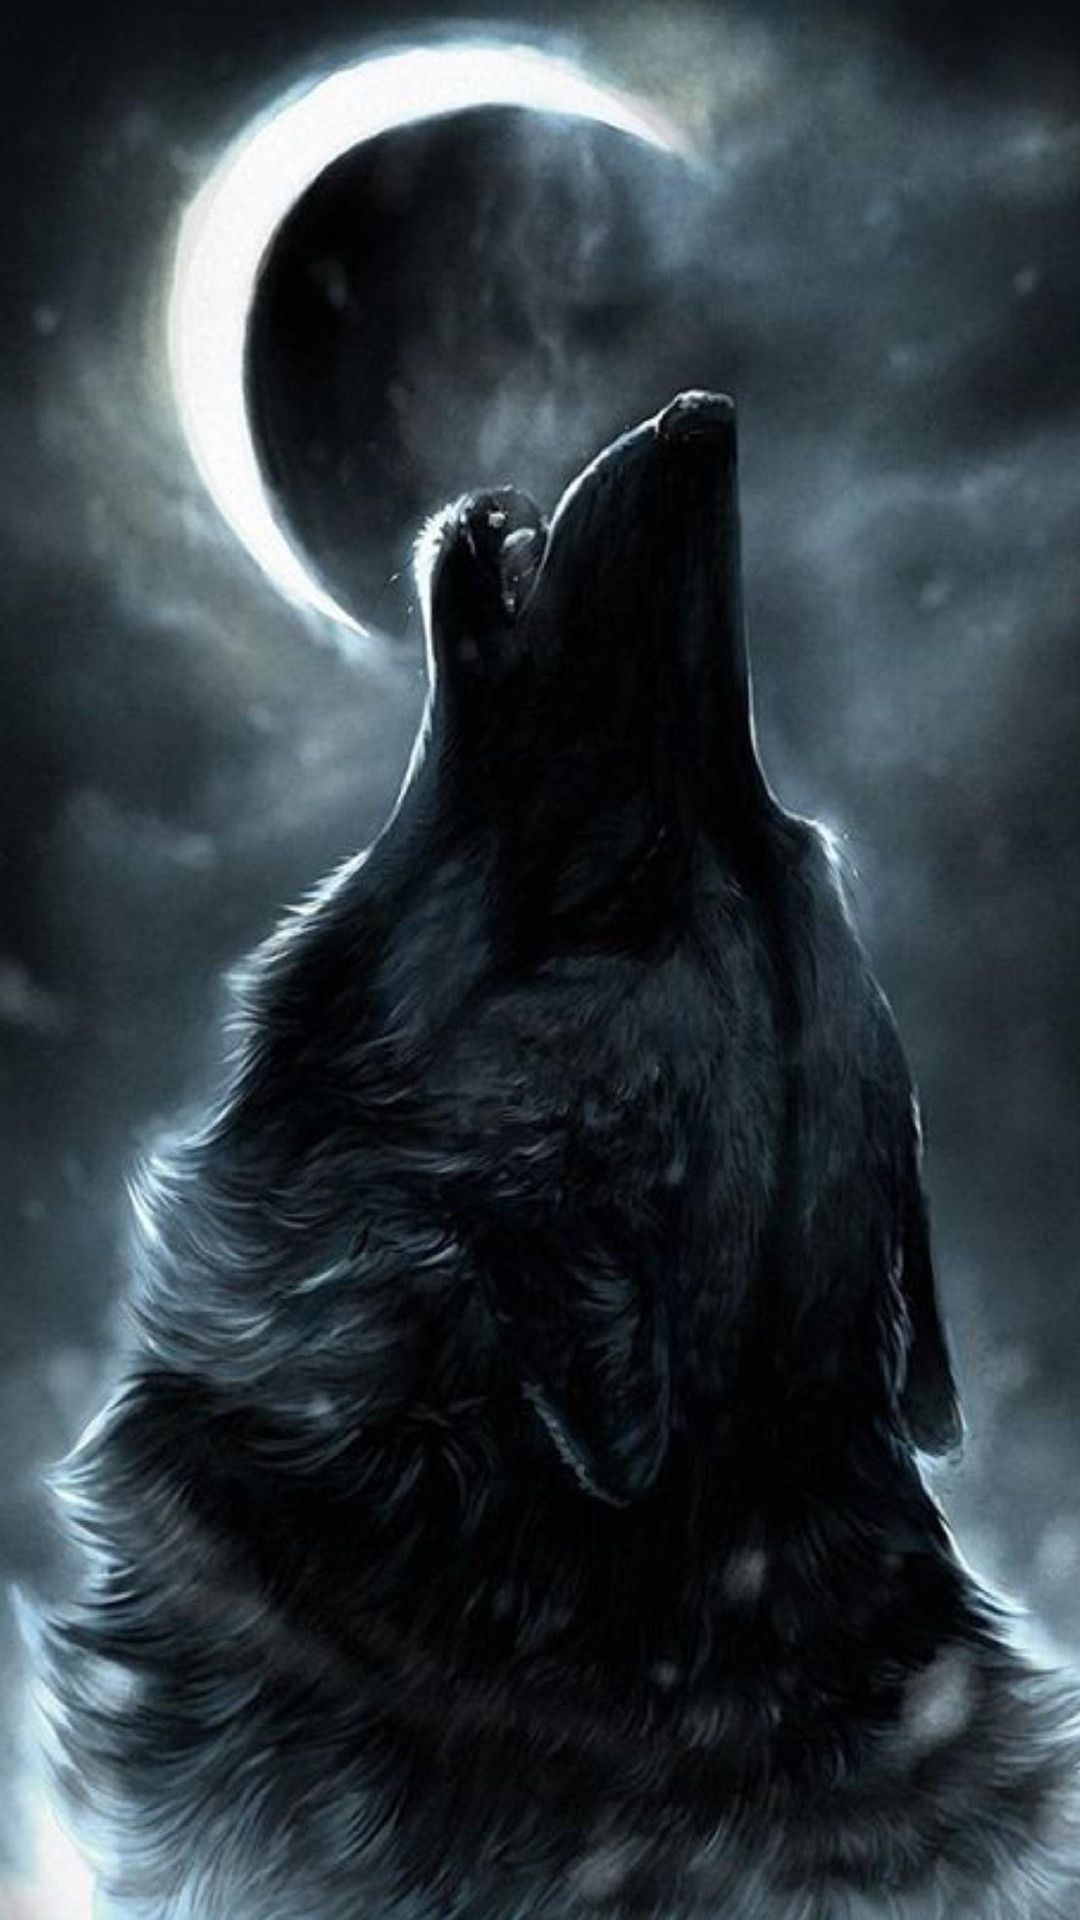 Epic Wolf Wallpapers Full Hd »Hupages» Descargar Iphone Wallpapers